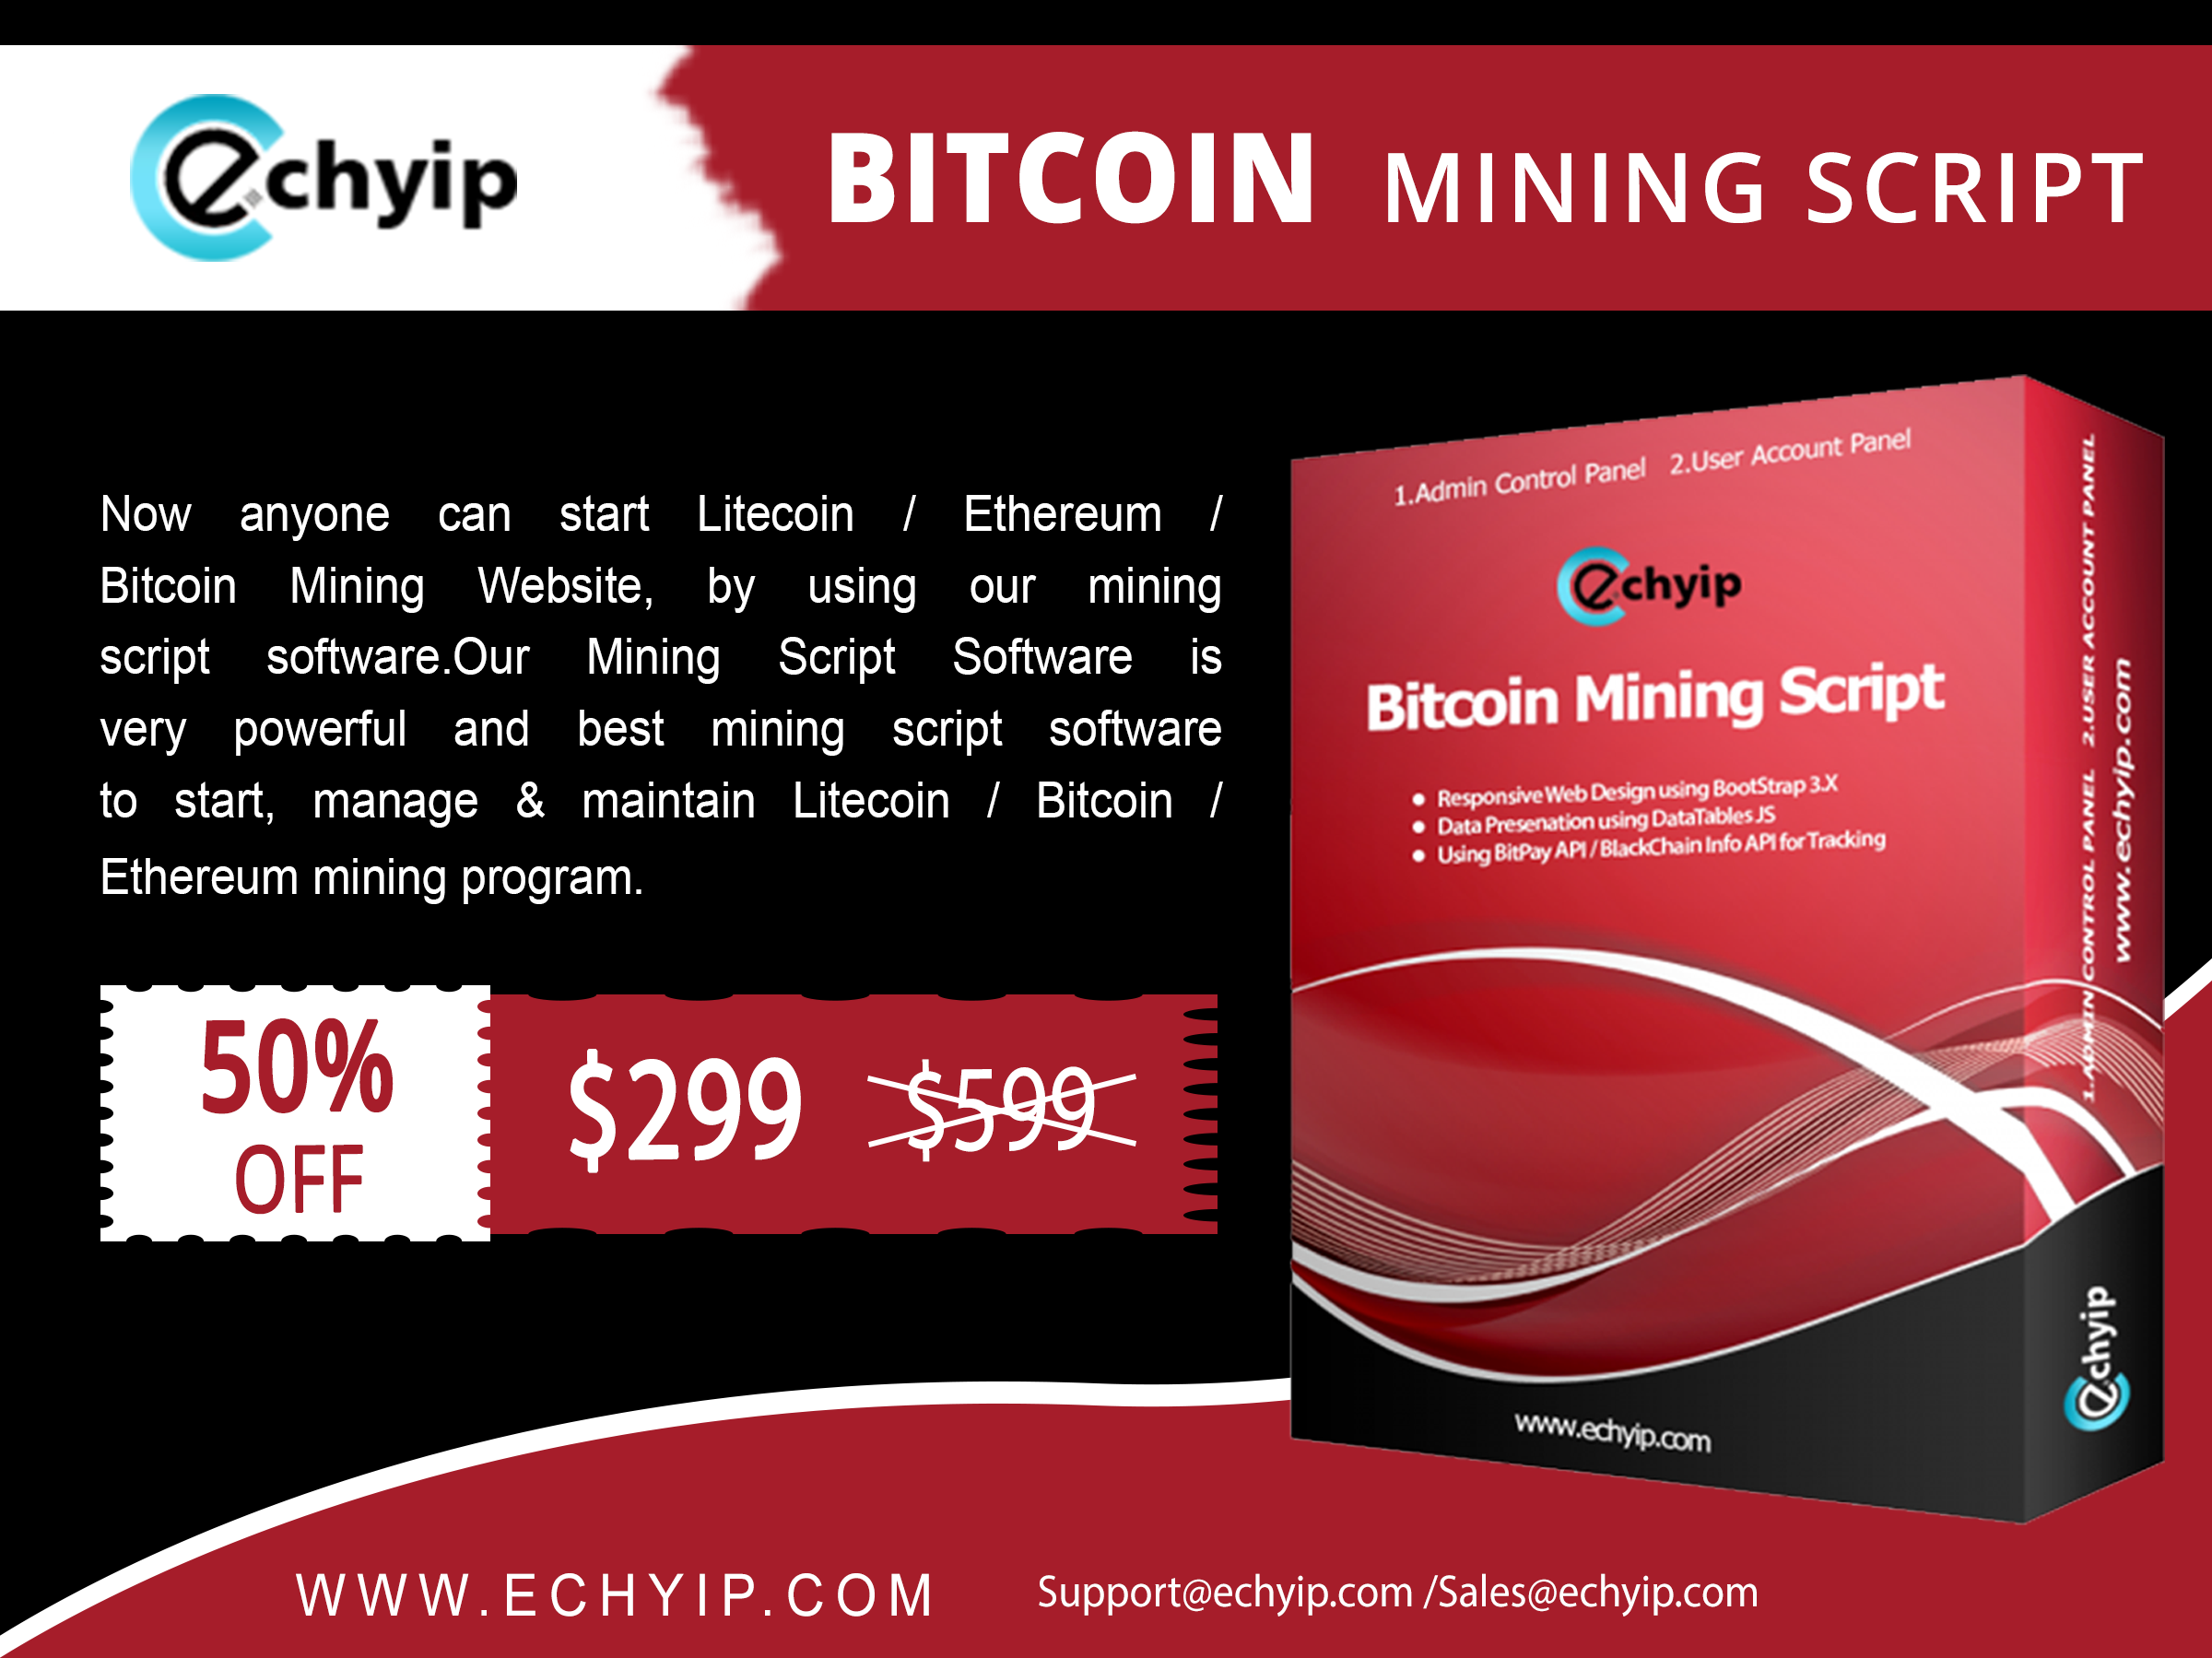 Get a highly secured, mobile-friendly interface based Bitcoin mining